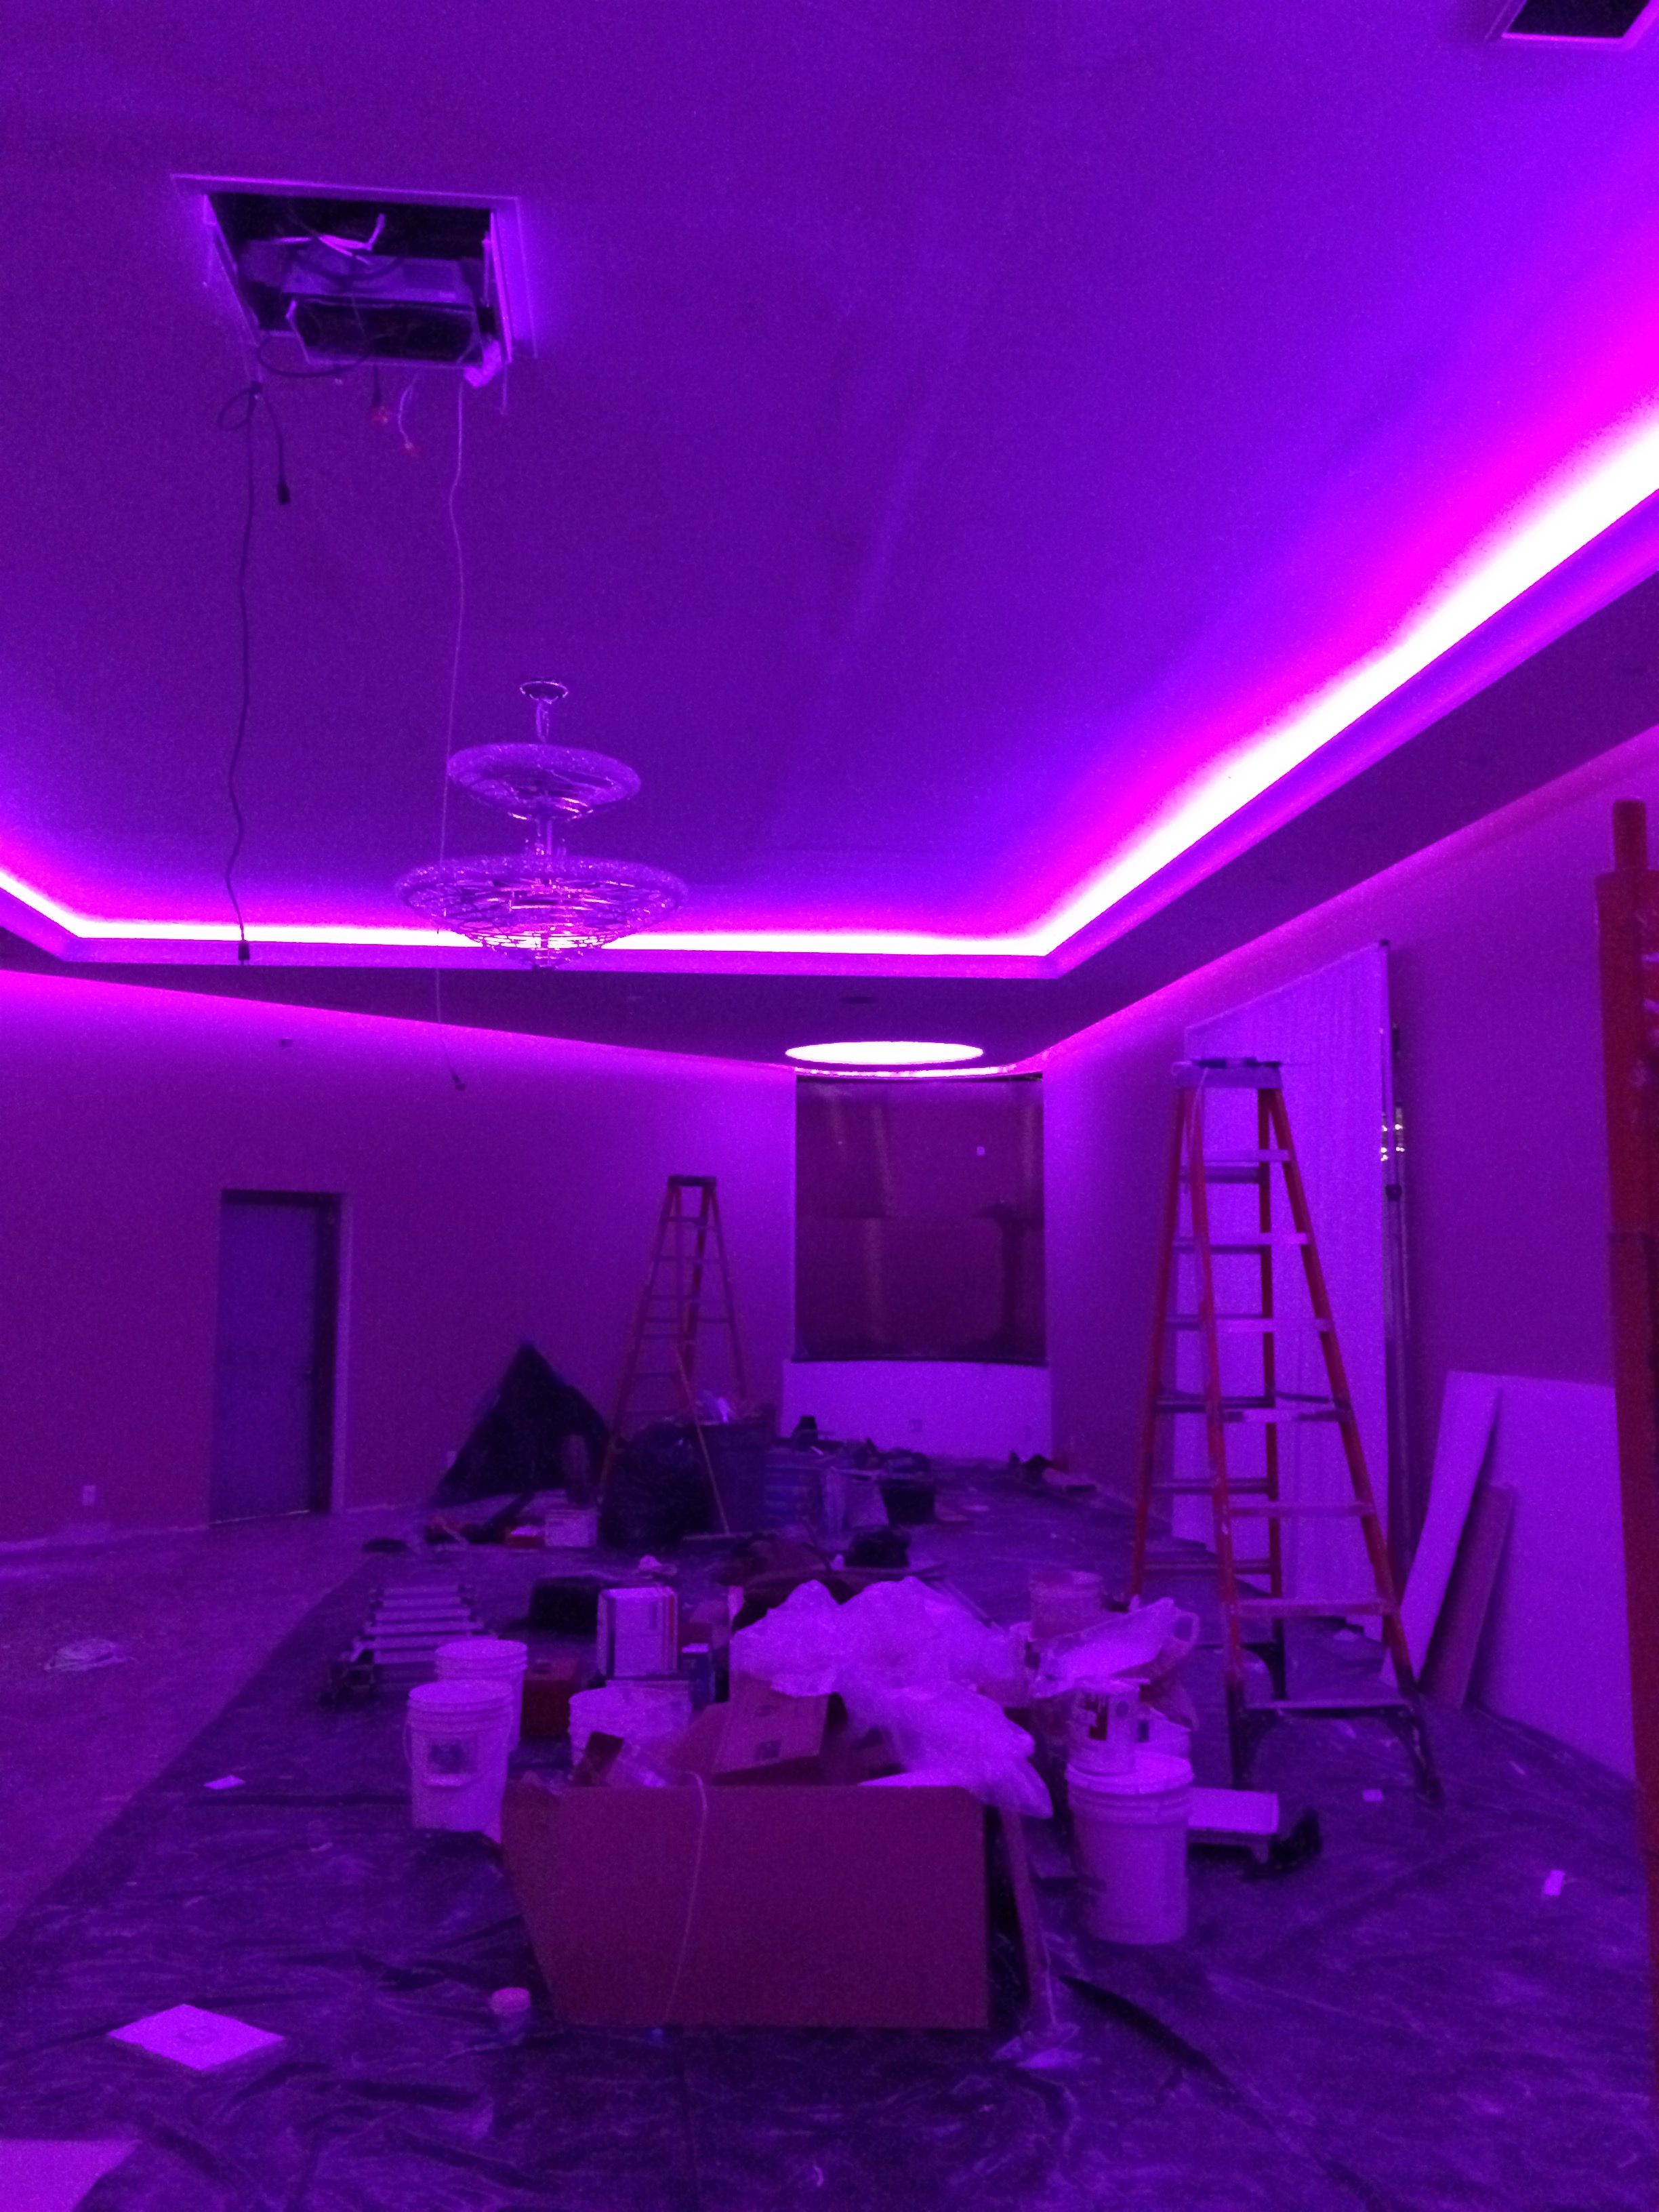 Luce Led Neon Led Tape In Soffet Millions And Millions Of Colors Led Ledlighting